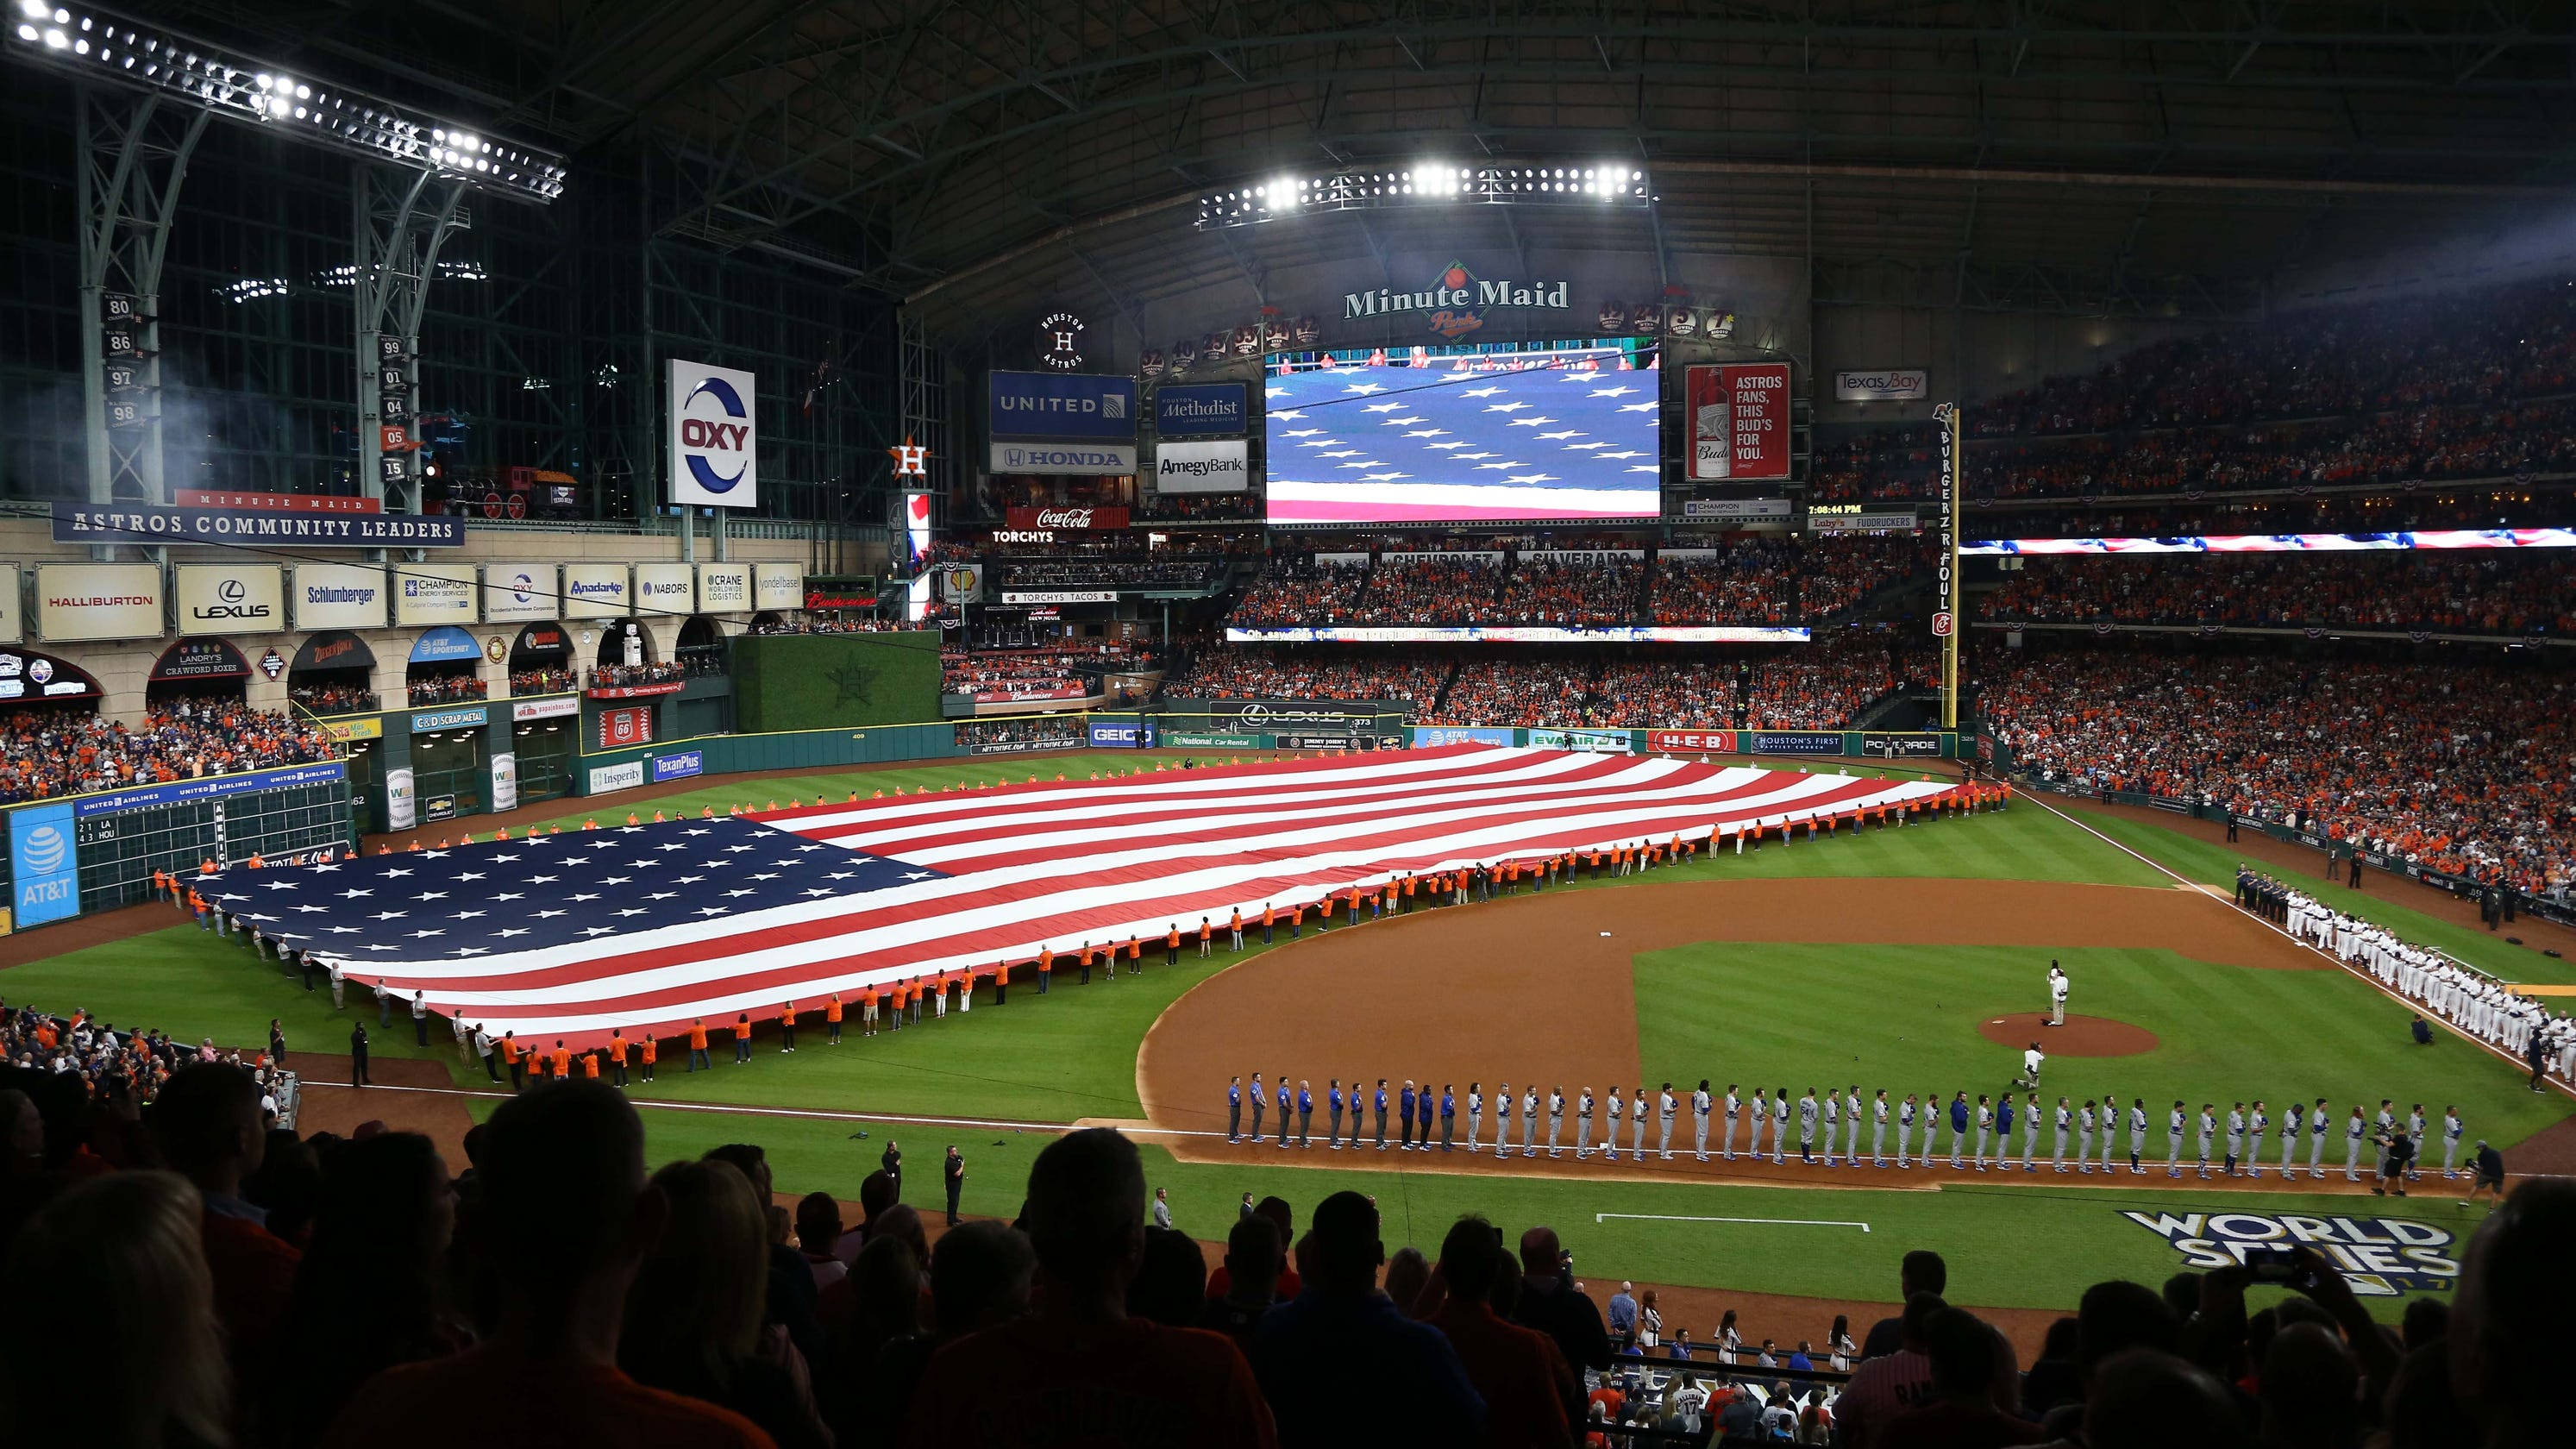 Injured parties, defiant execs and a tainted title: Houston Astros' sign-stealing scandal checks all the boxes